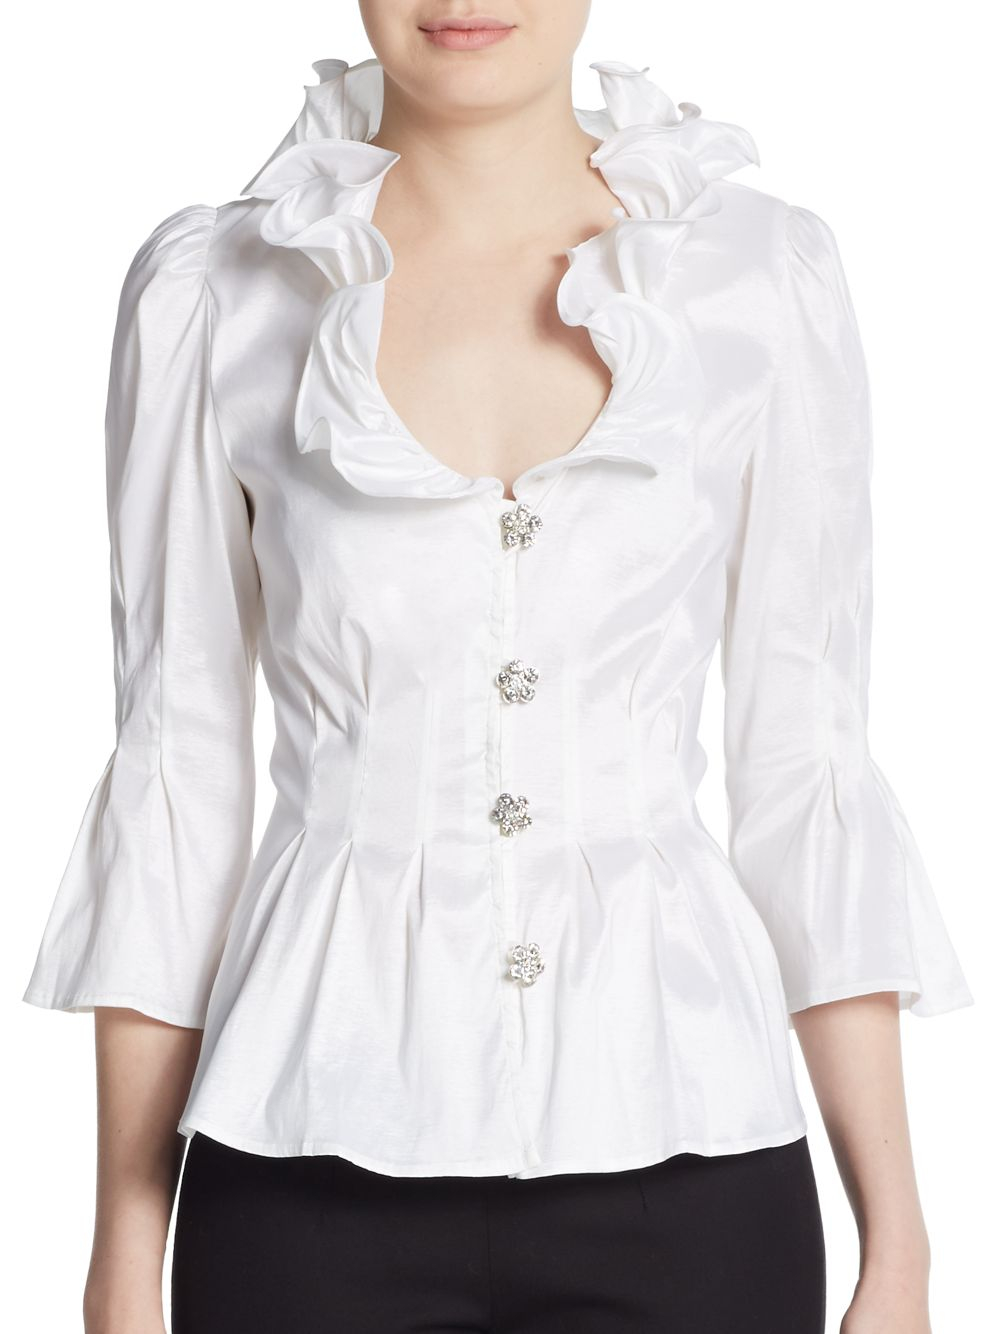 Women'S White Blouse With Black Collar 82